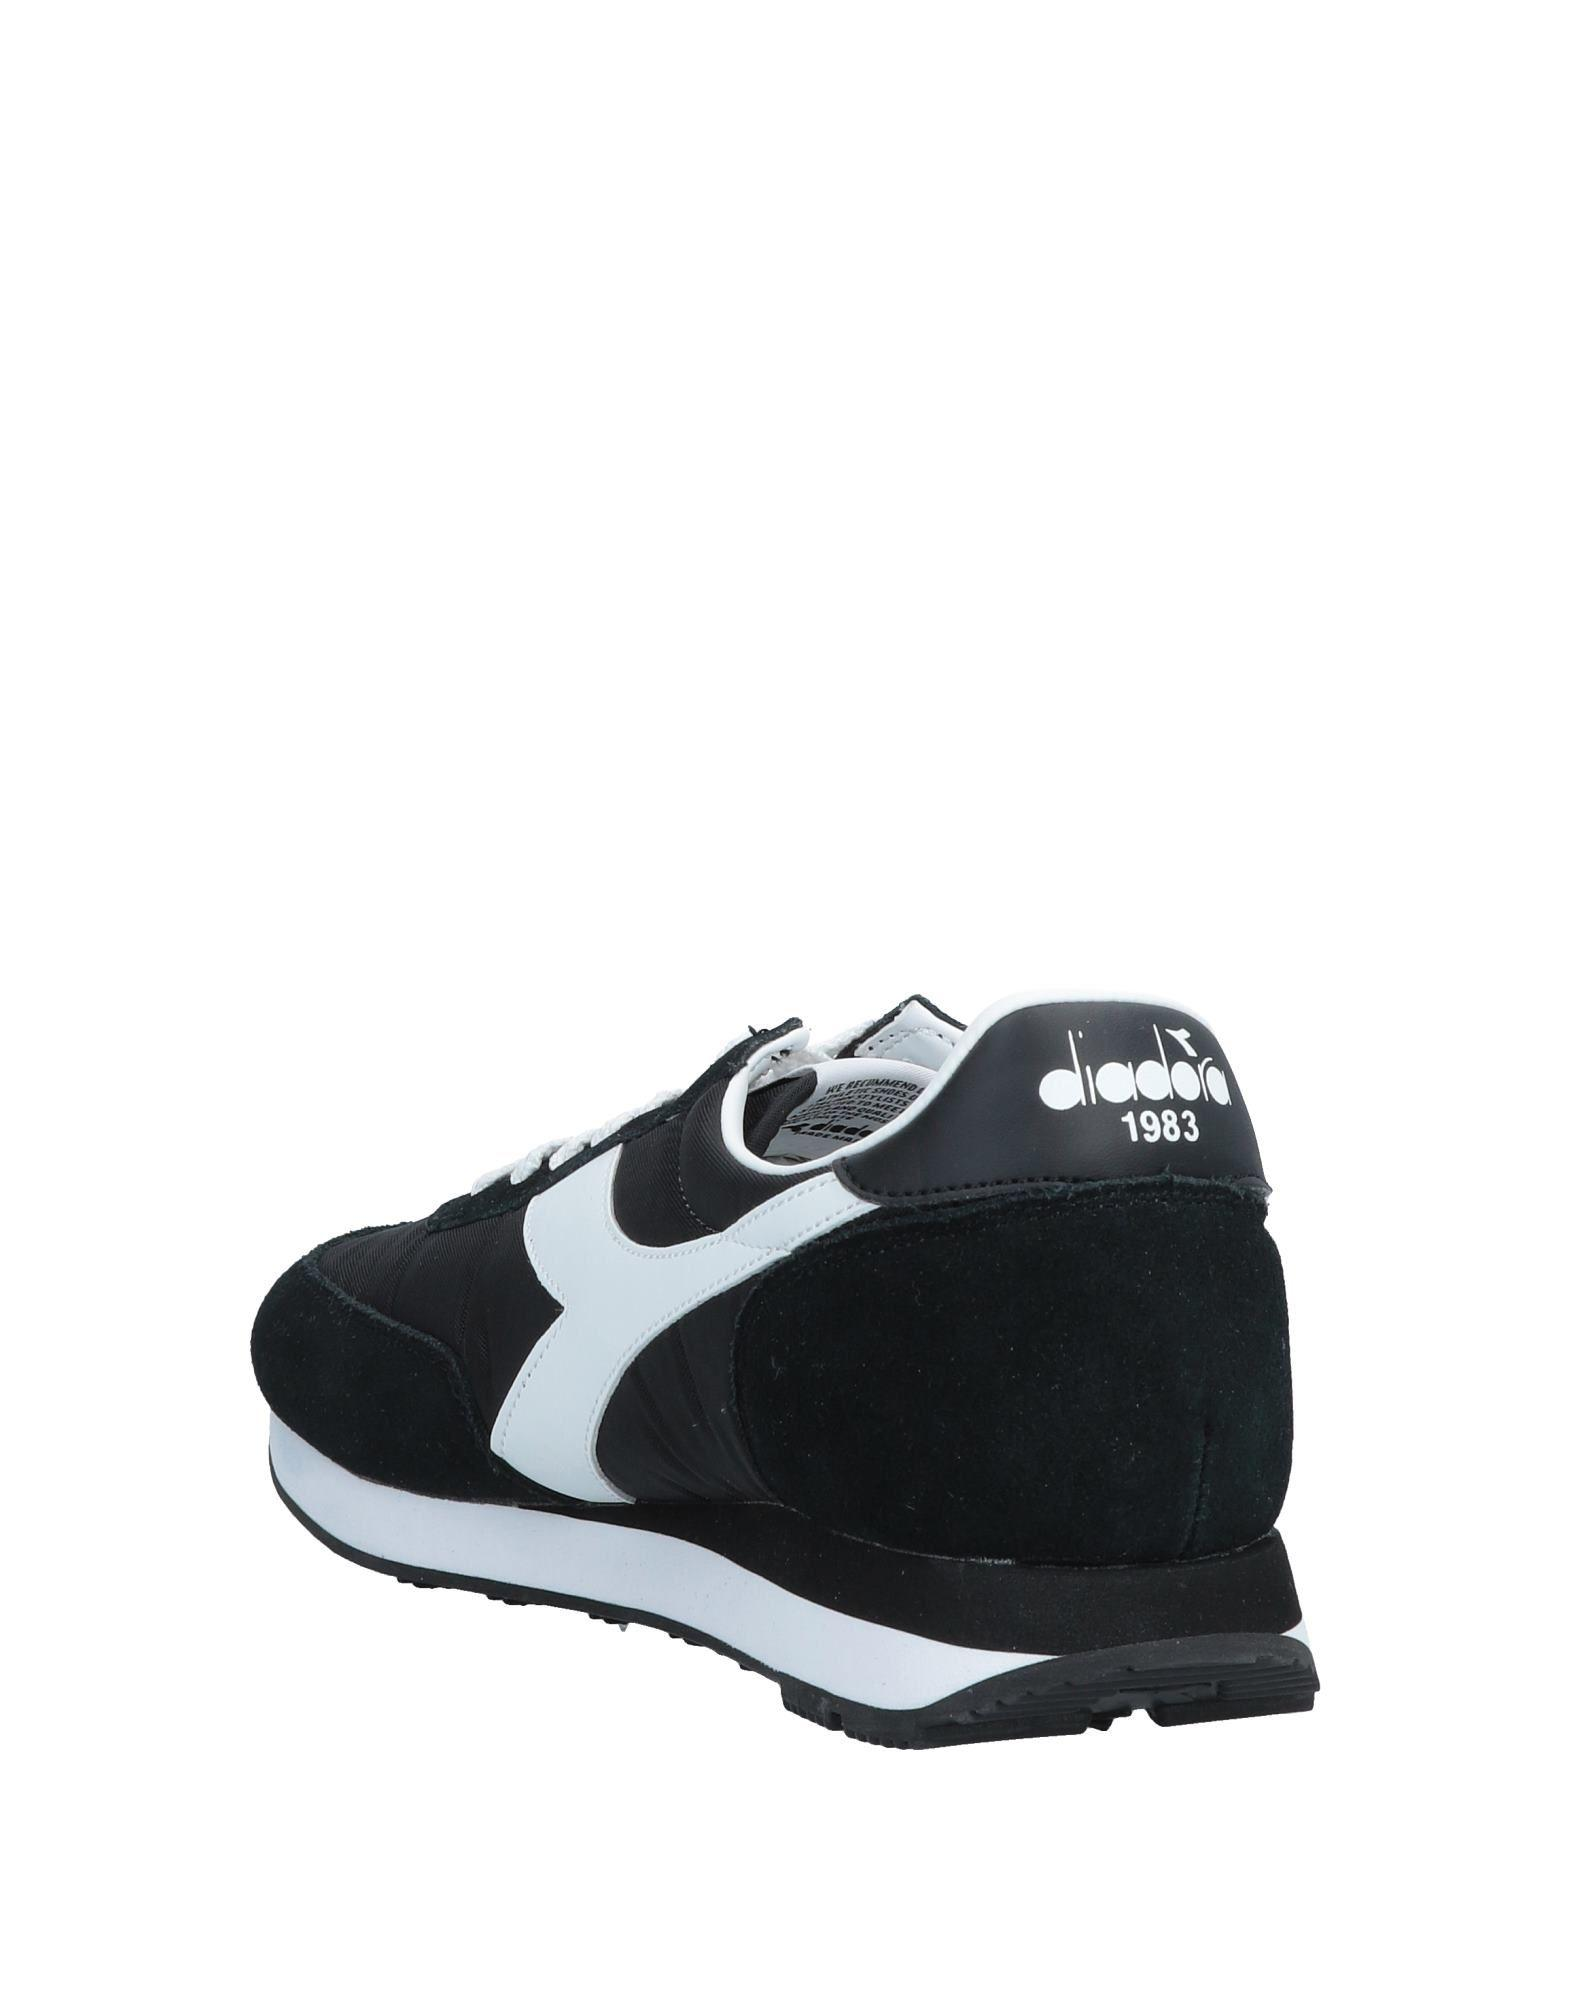 e8e23c0655 Diadora Low-tops & Sneakers in Black for Men - Lyst